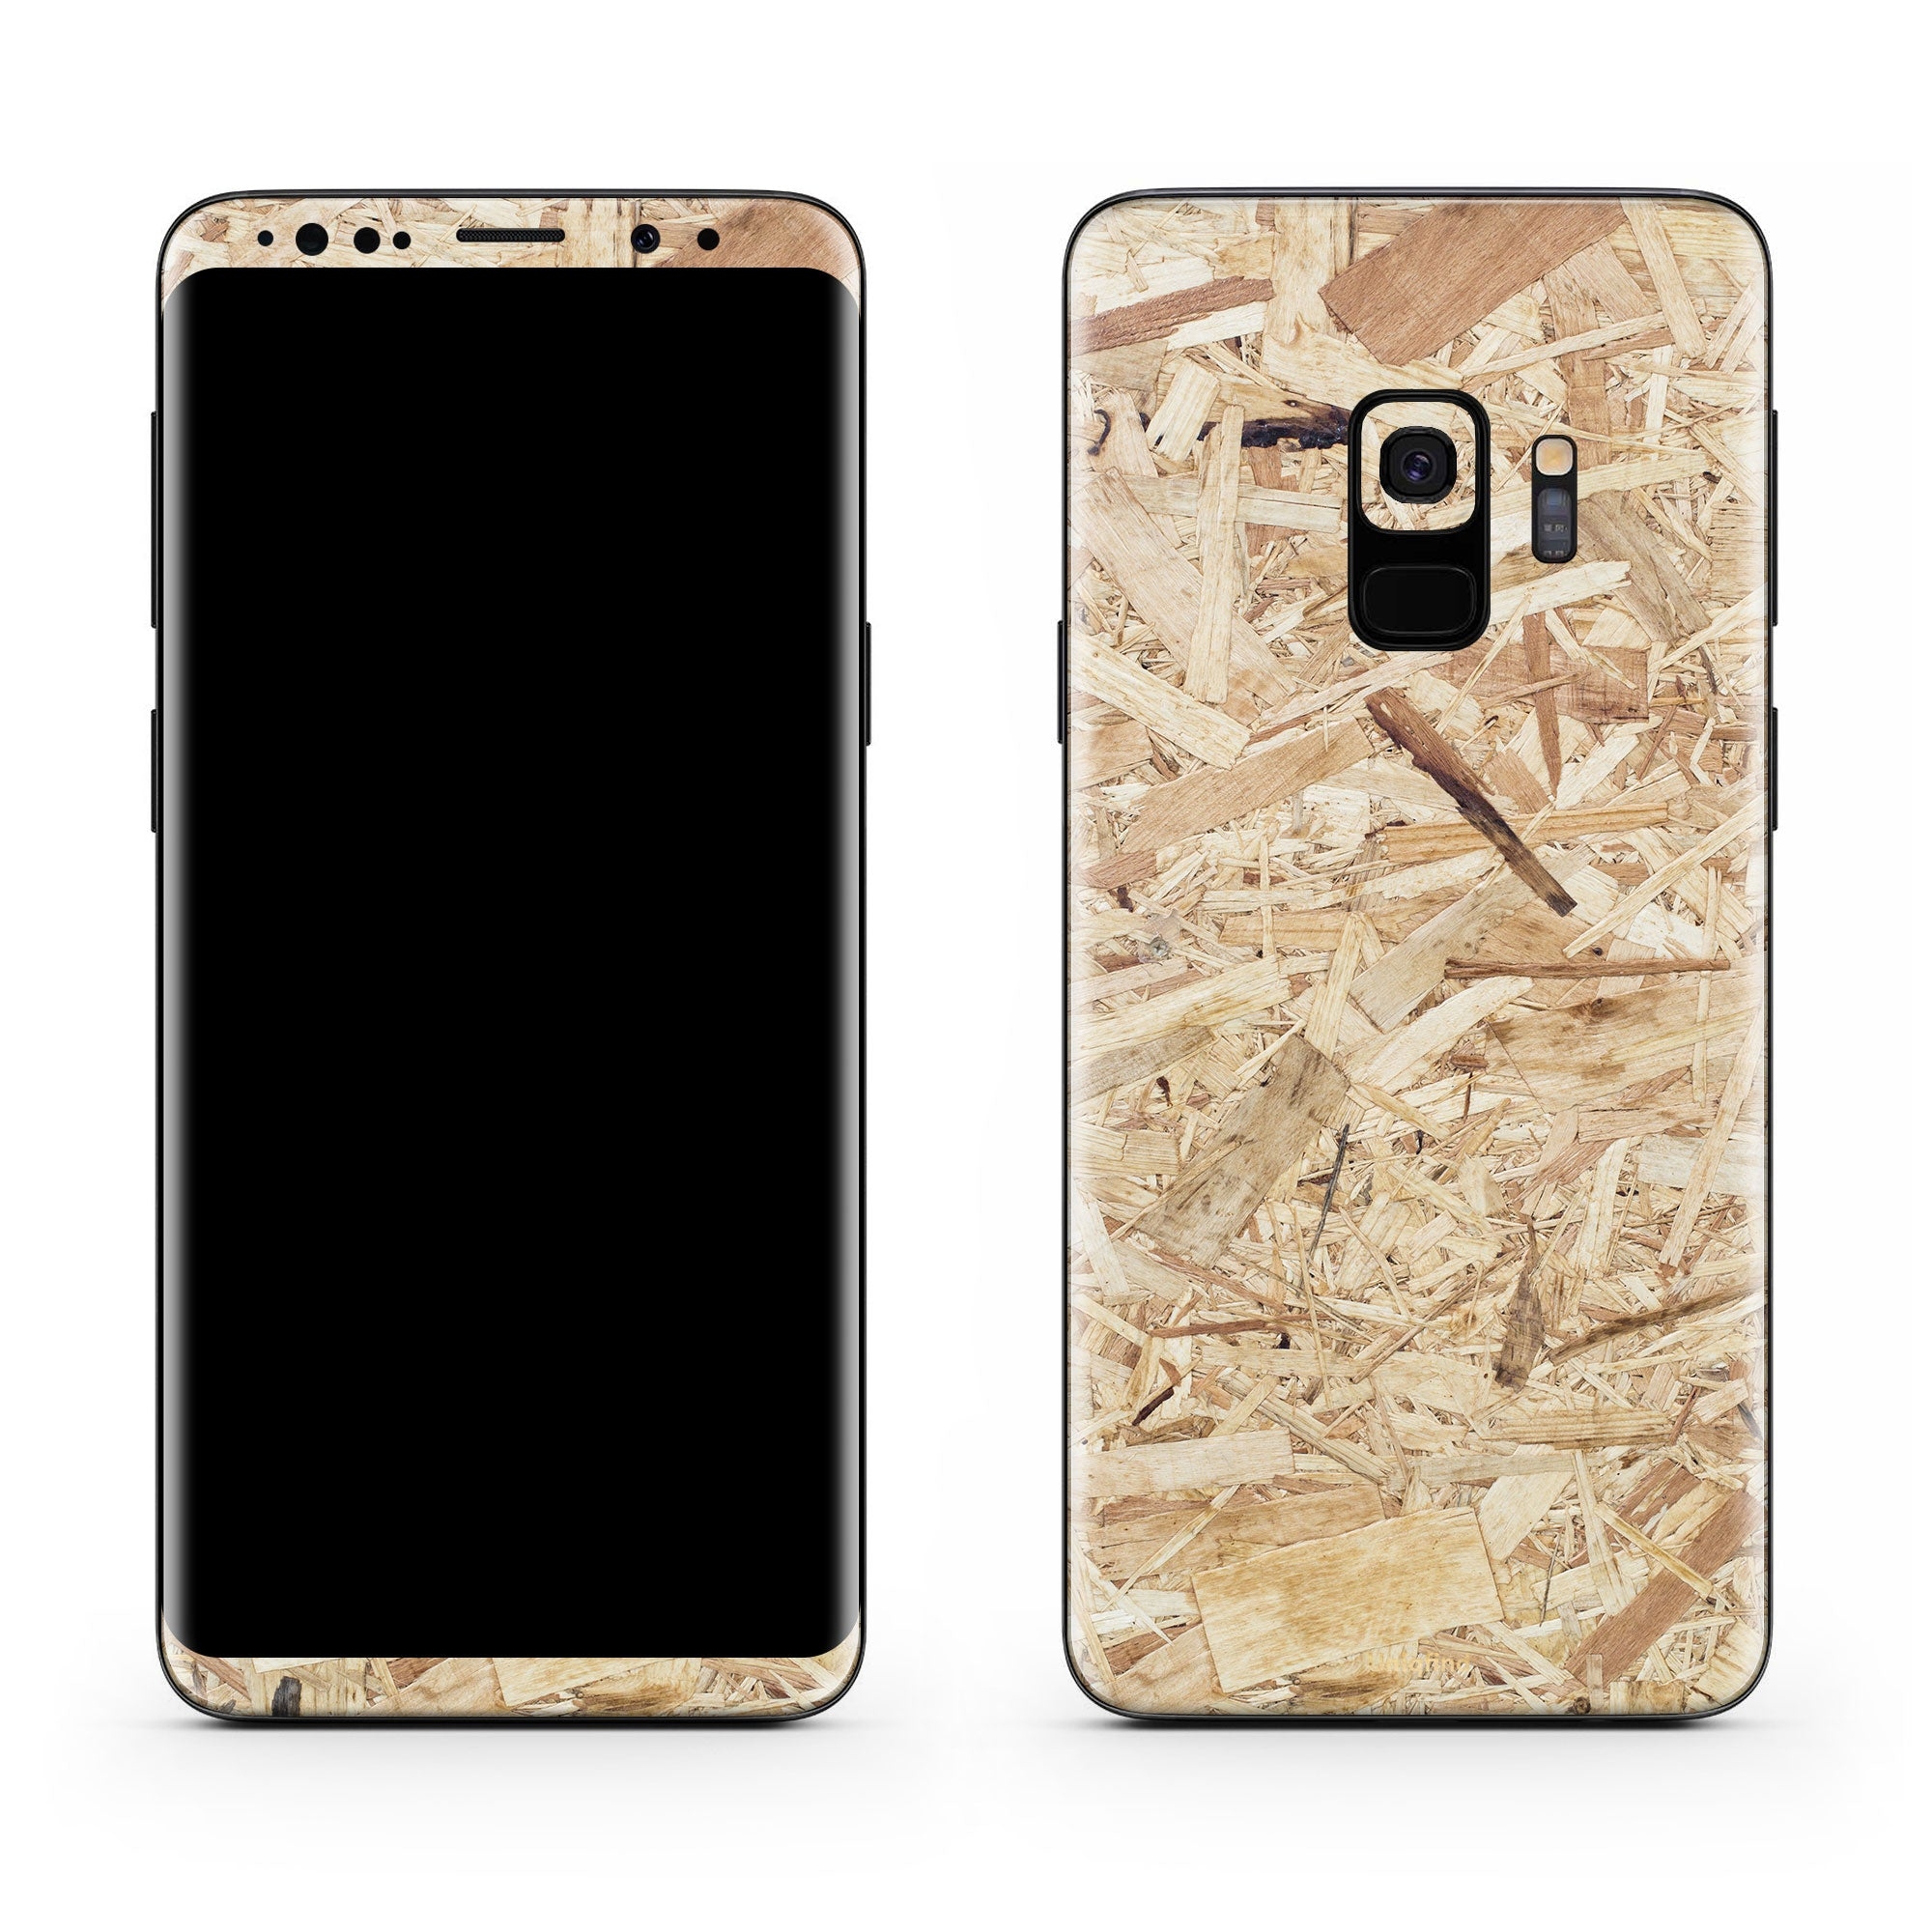 Plywood S9 Plus Skin